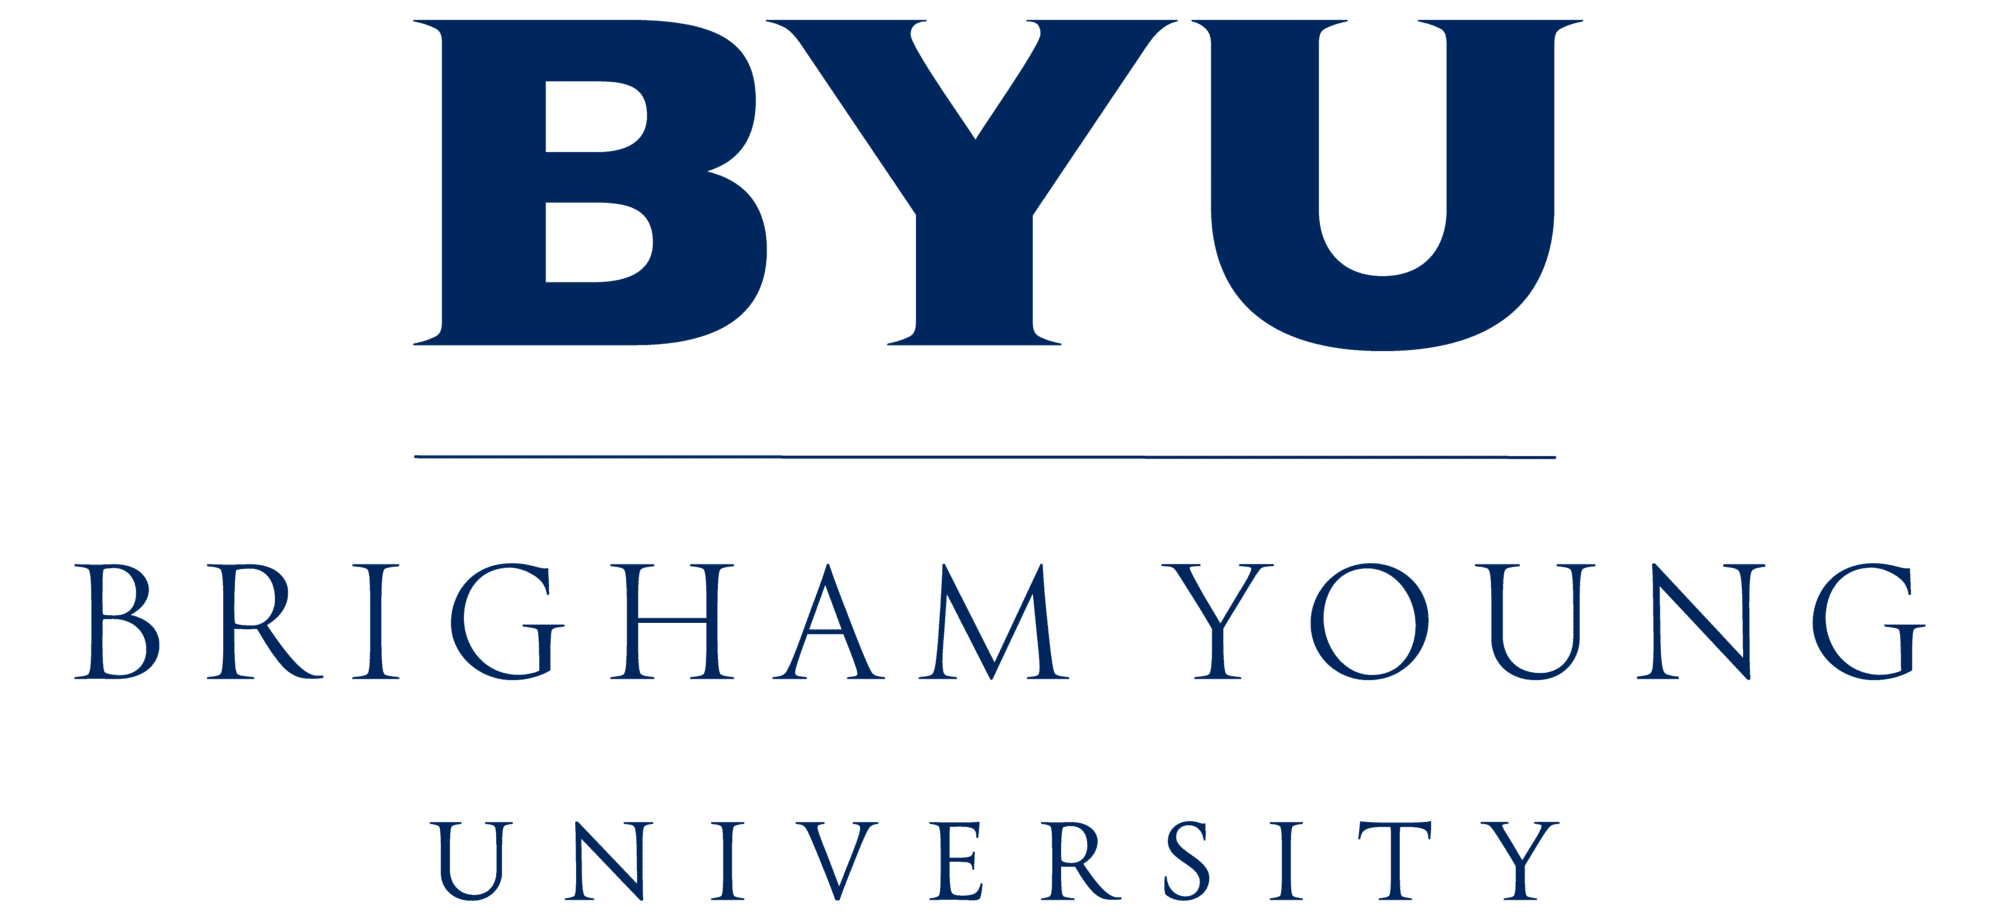 Brigham Young University - Human Resources MBA